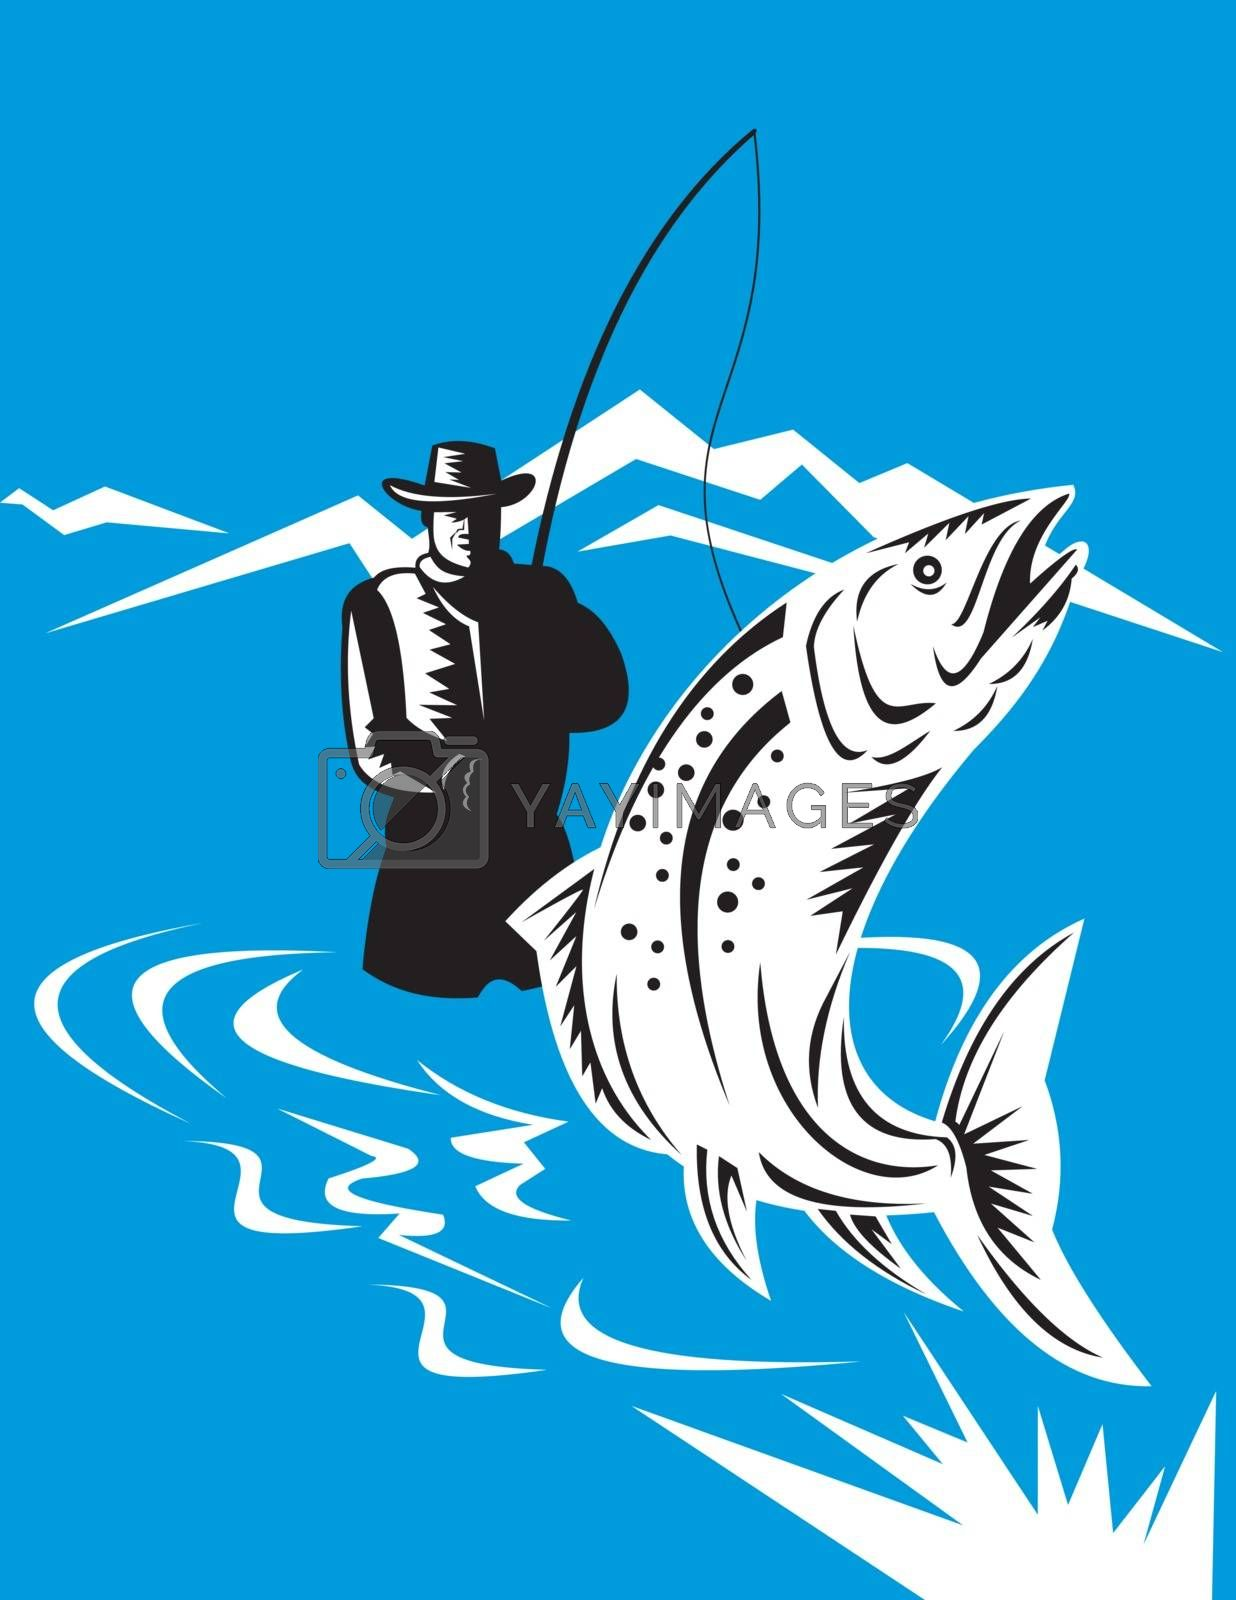 illustration of a trout fish jumping reeled by fly fisherman done in retro style